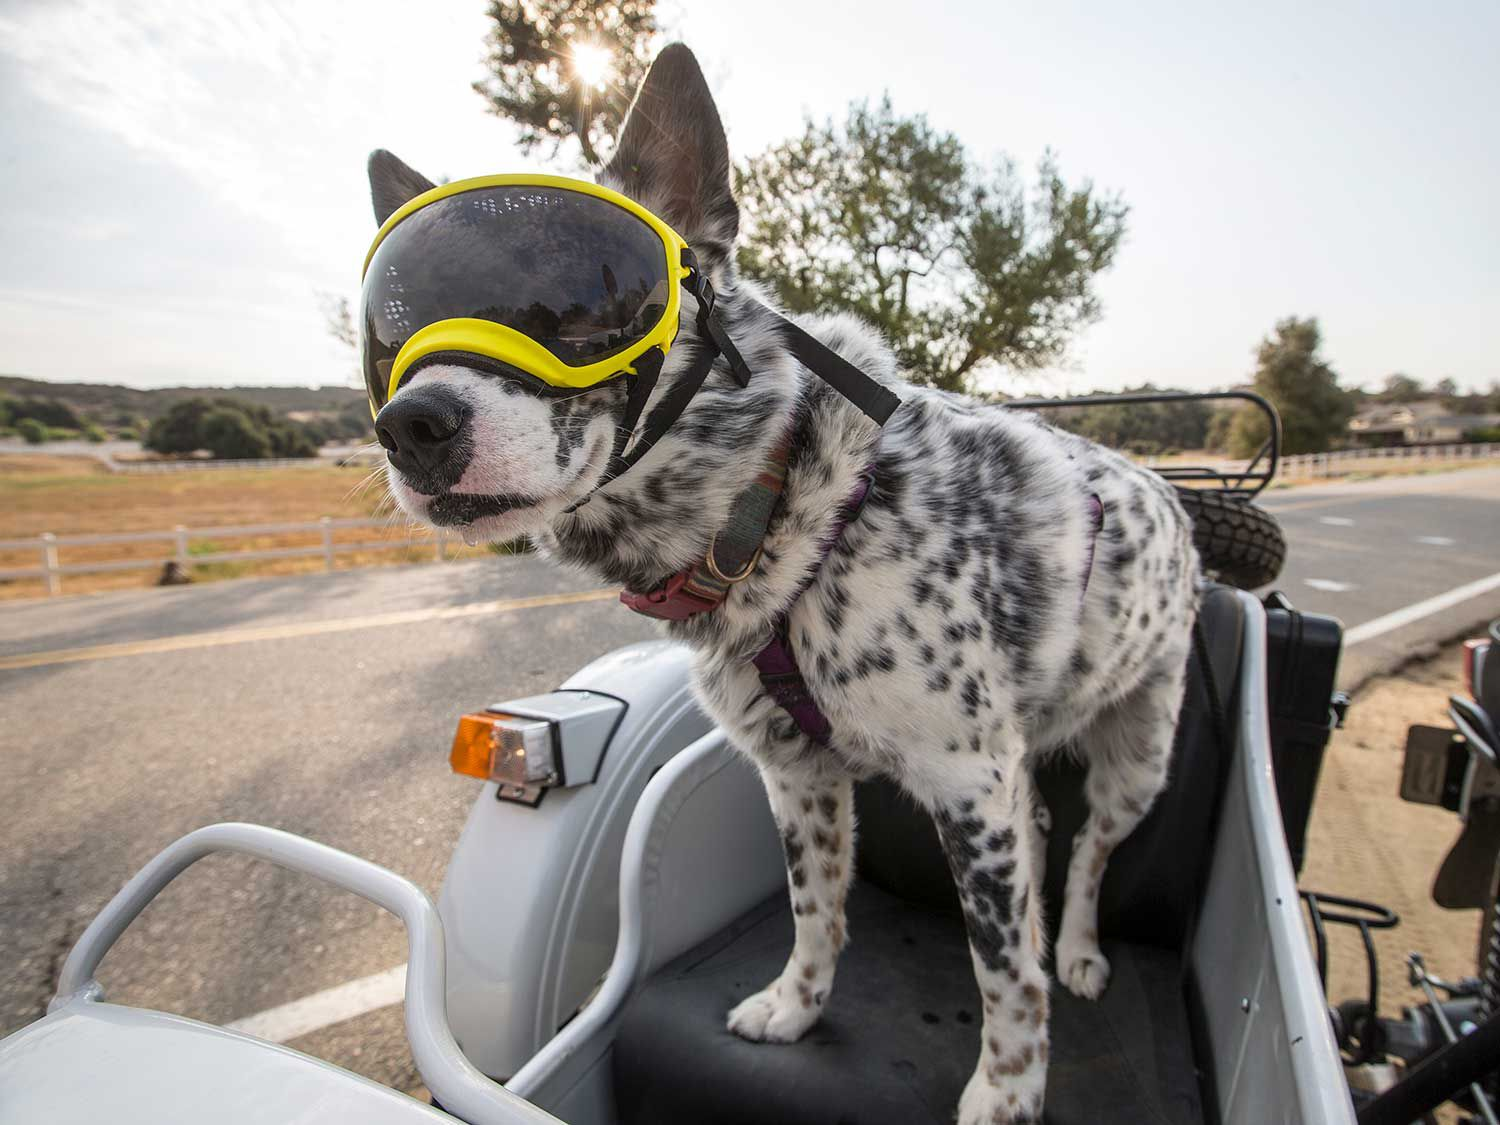 Join Australian cattle dog Gracie as she gears up to tour the country with her dad, Justin Dawes, in <em>Motorcyclist</em>'s new YouTube series, Dog, Gone!